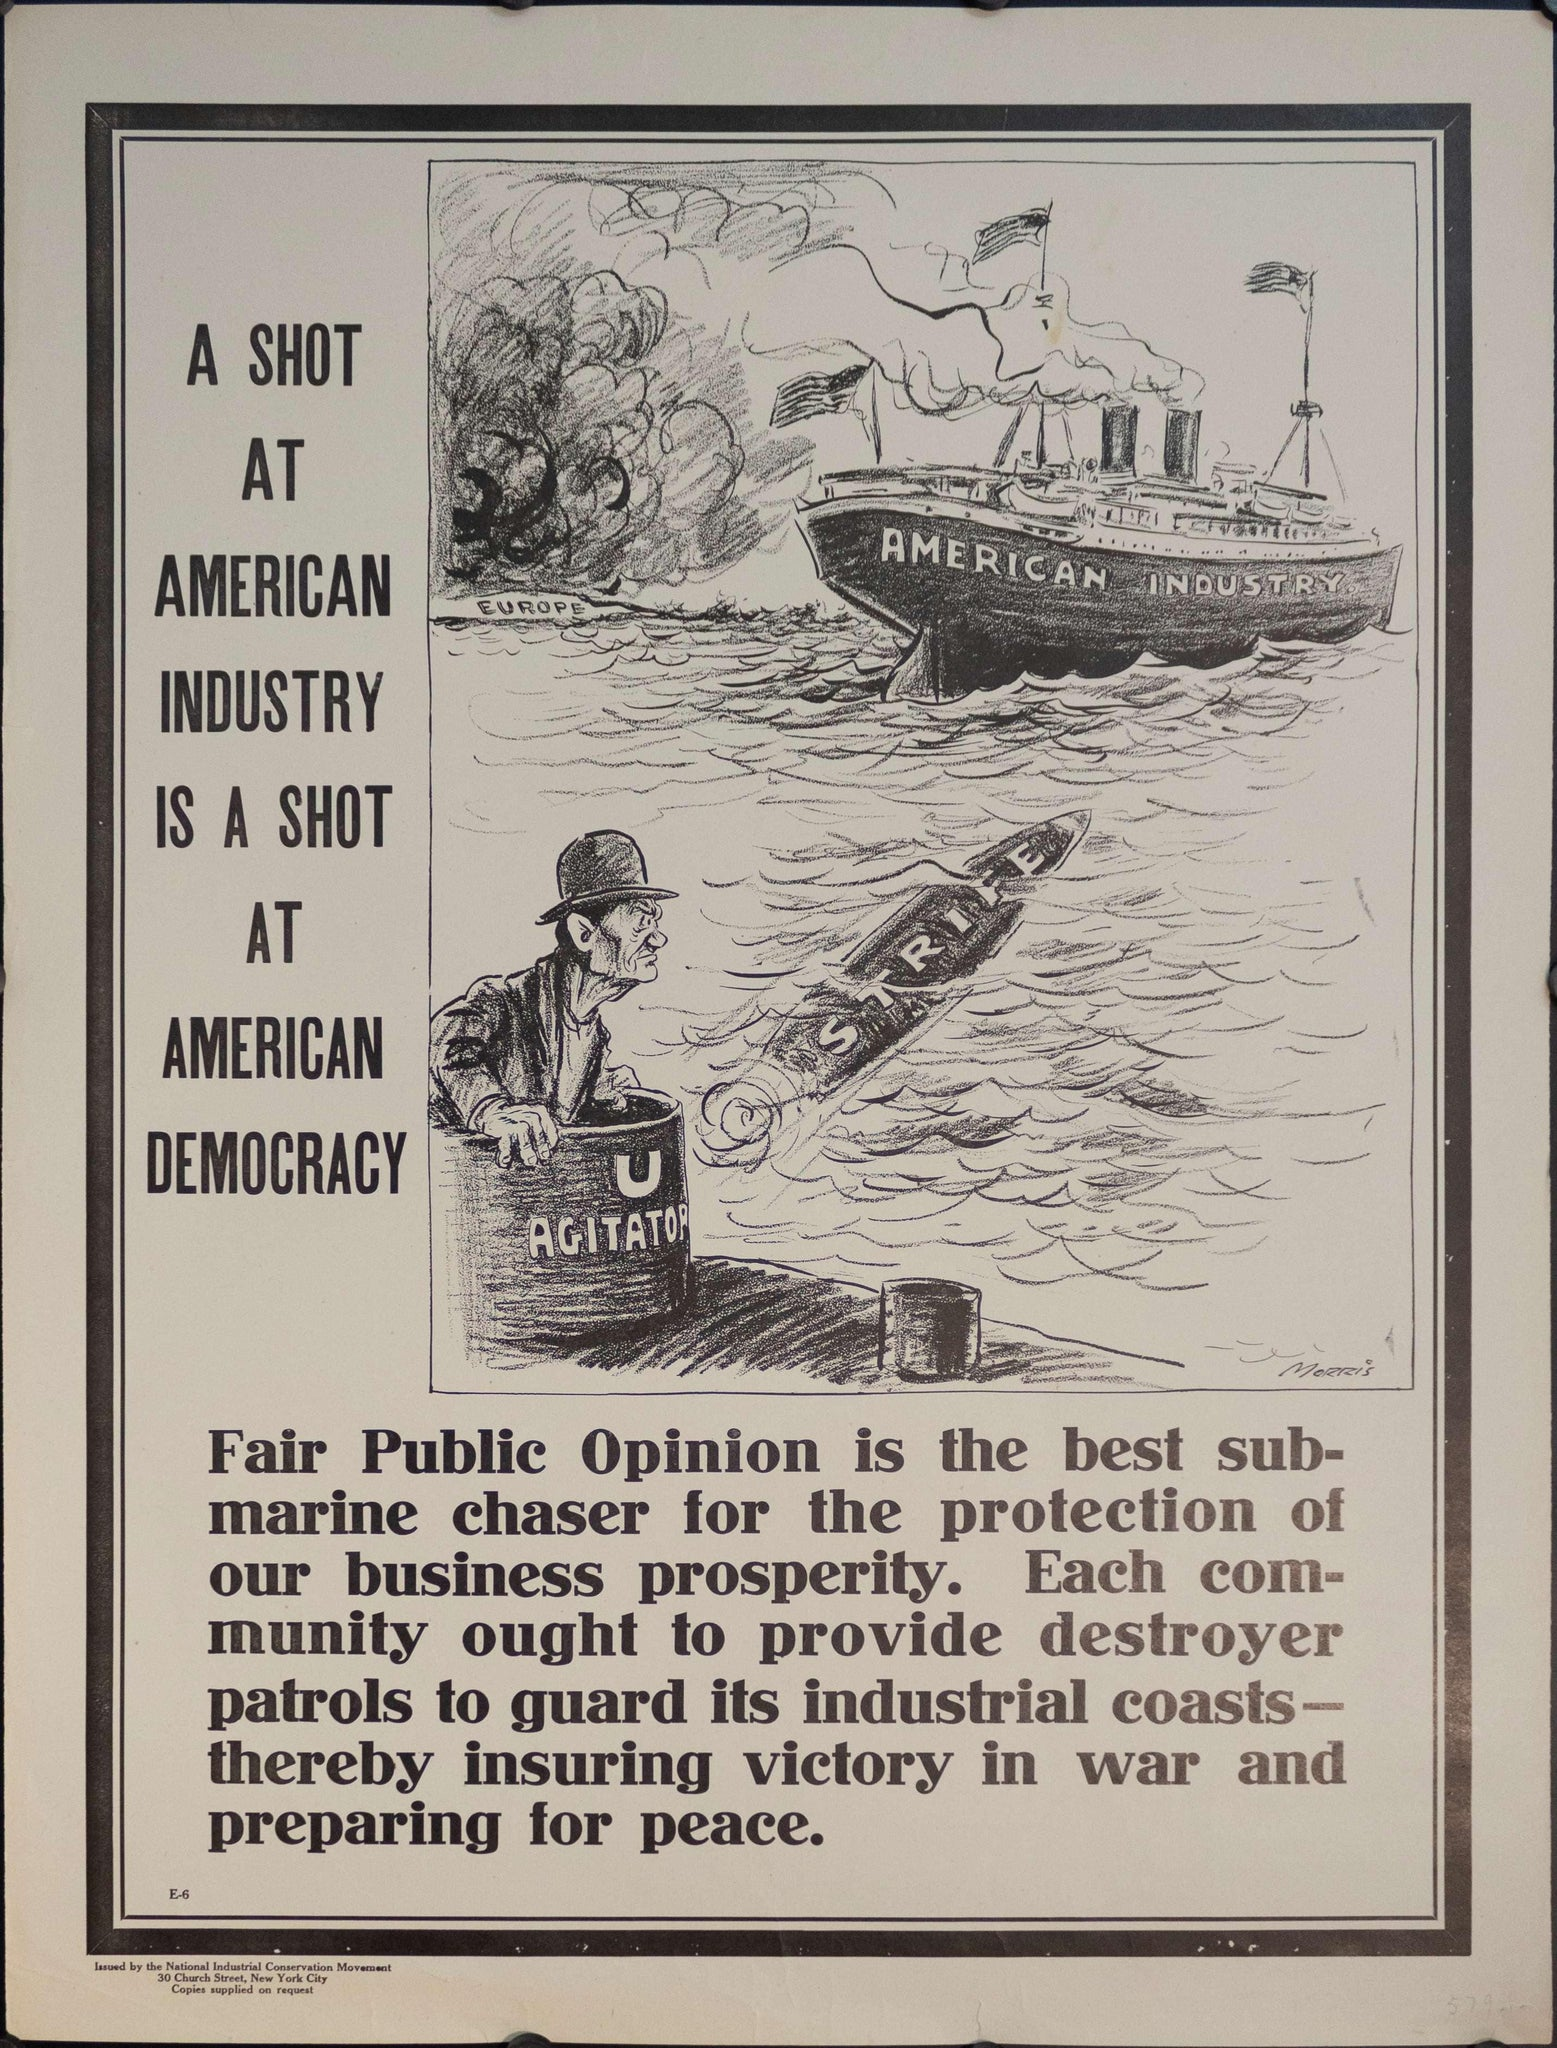 1917 A Shot At American Industry Is A Shot At American Democracy